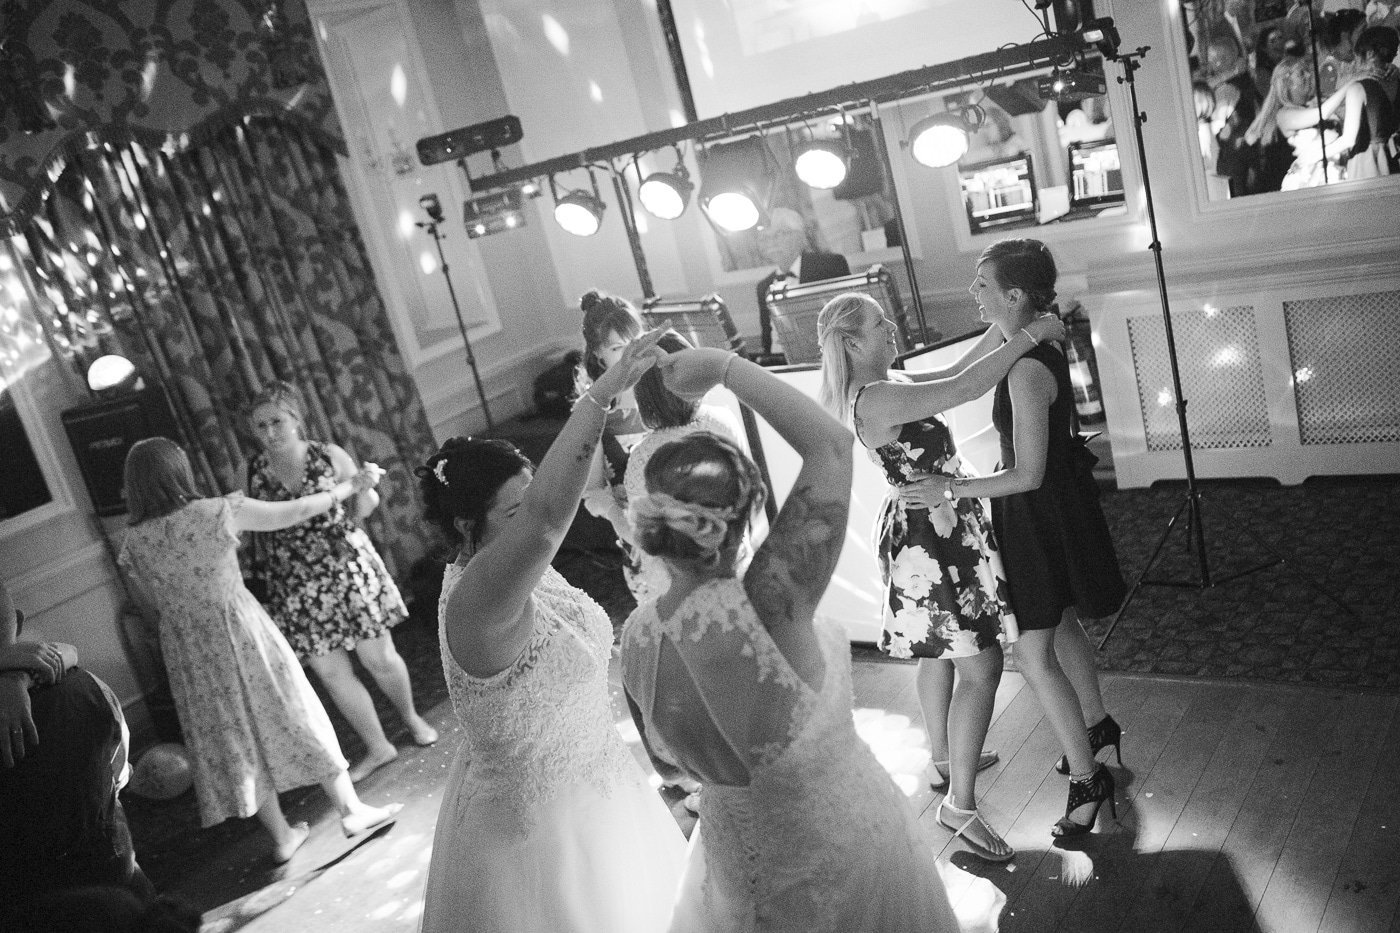 Brides and guests dancing together on the dancefloor for wedding photography by Joshua Wyborn